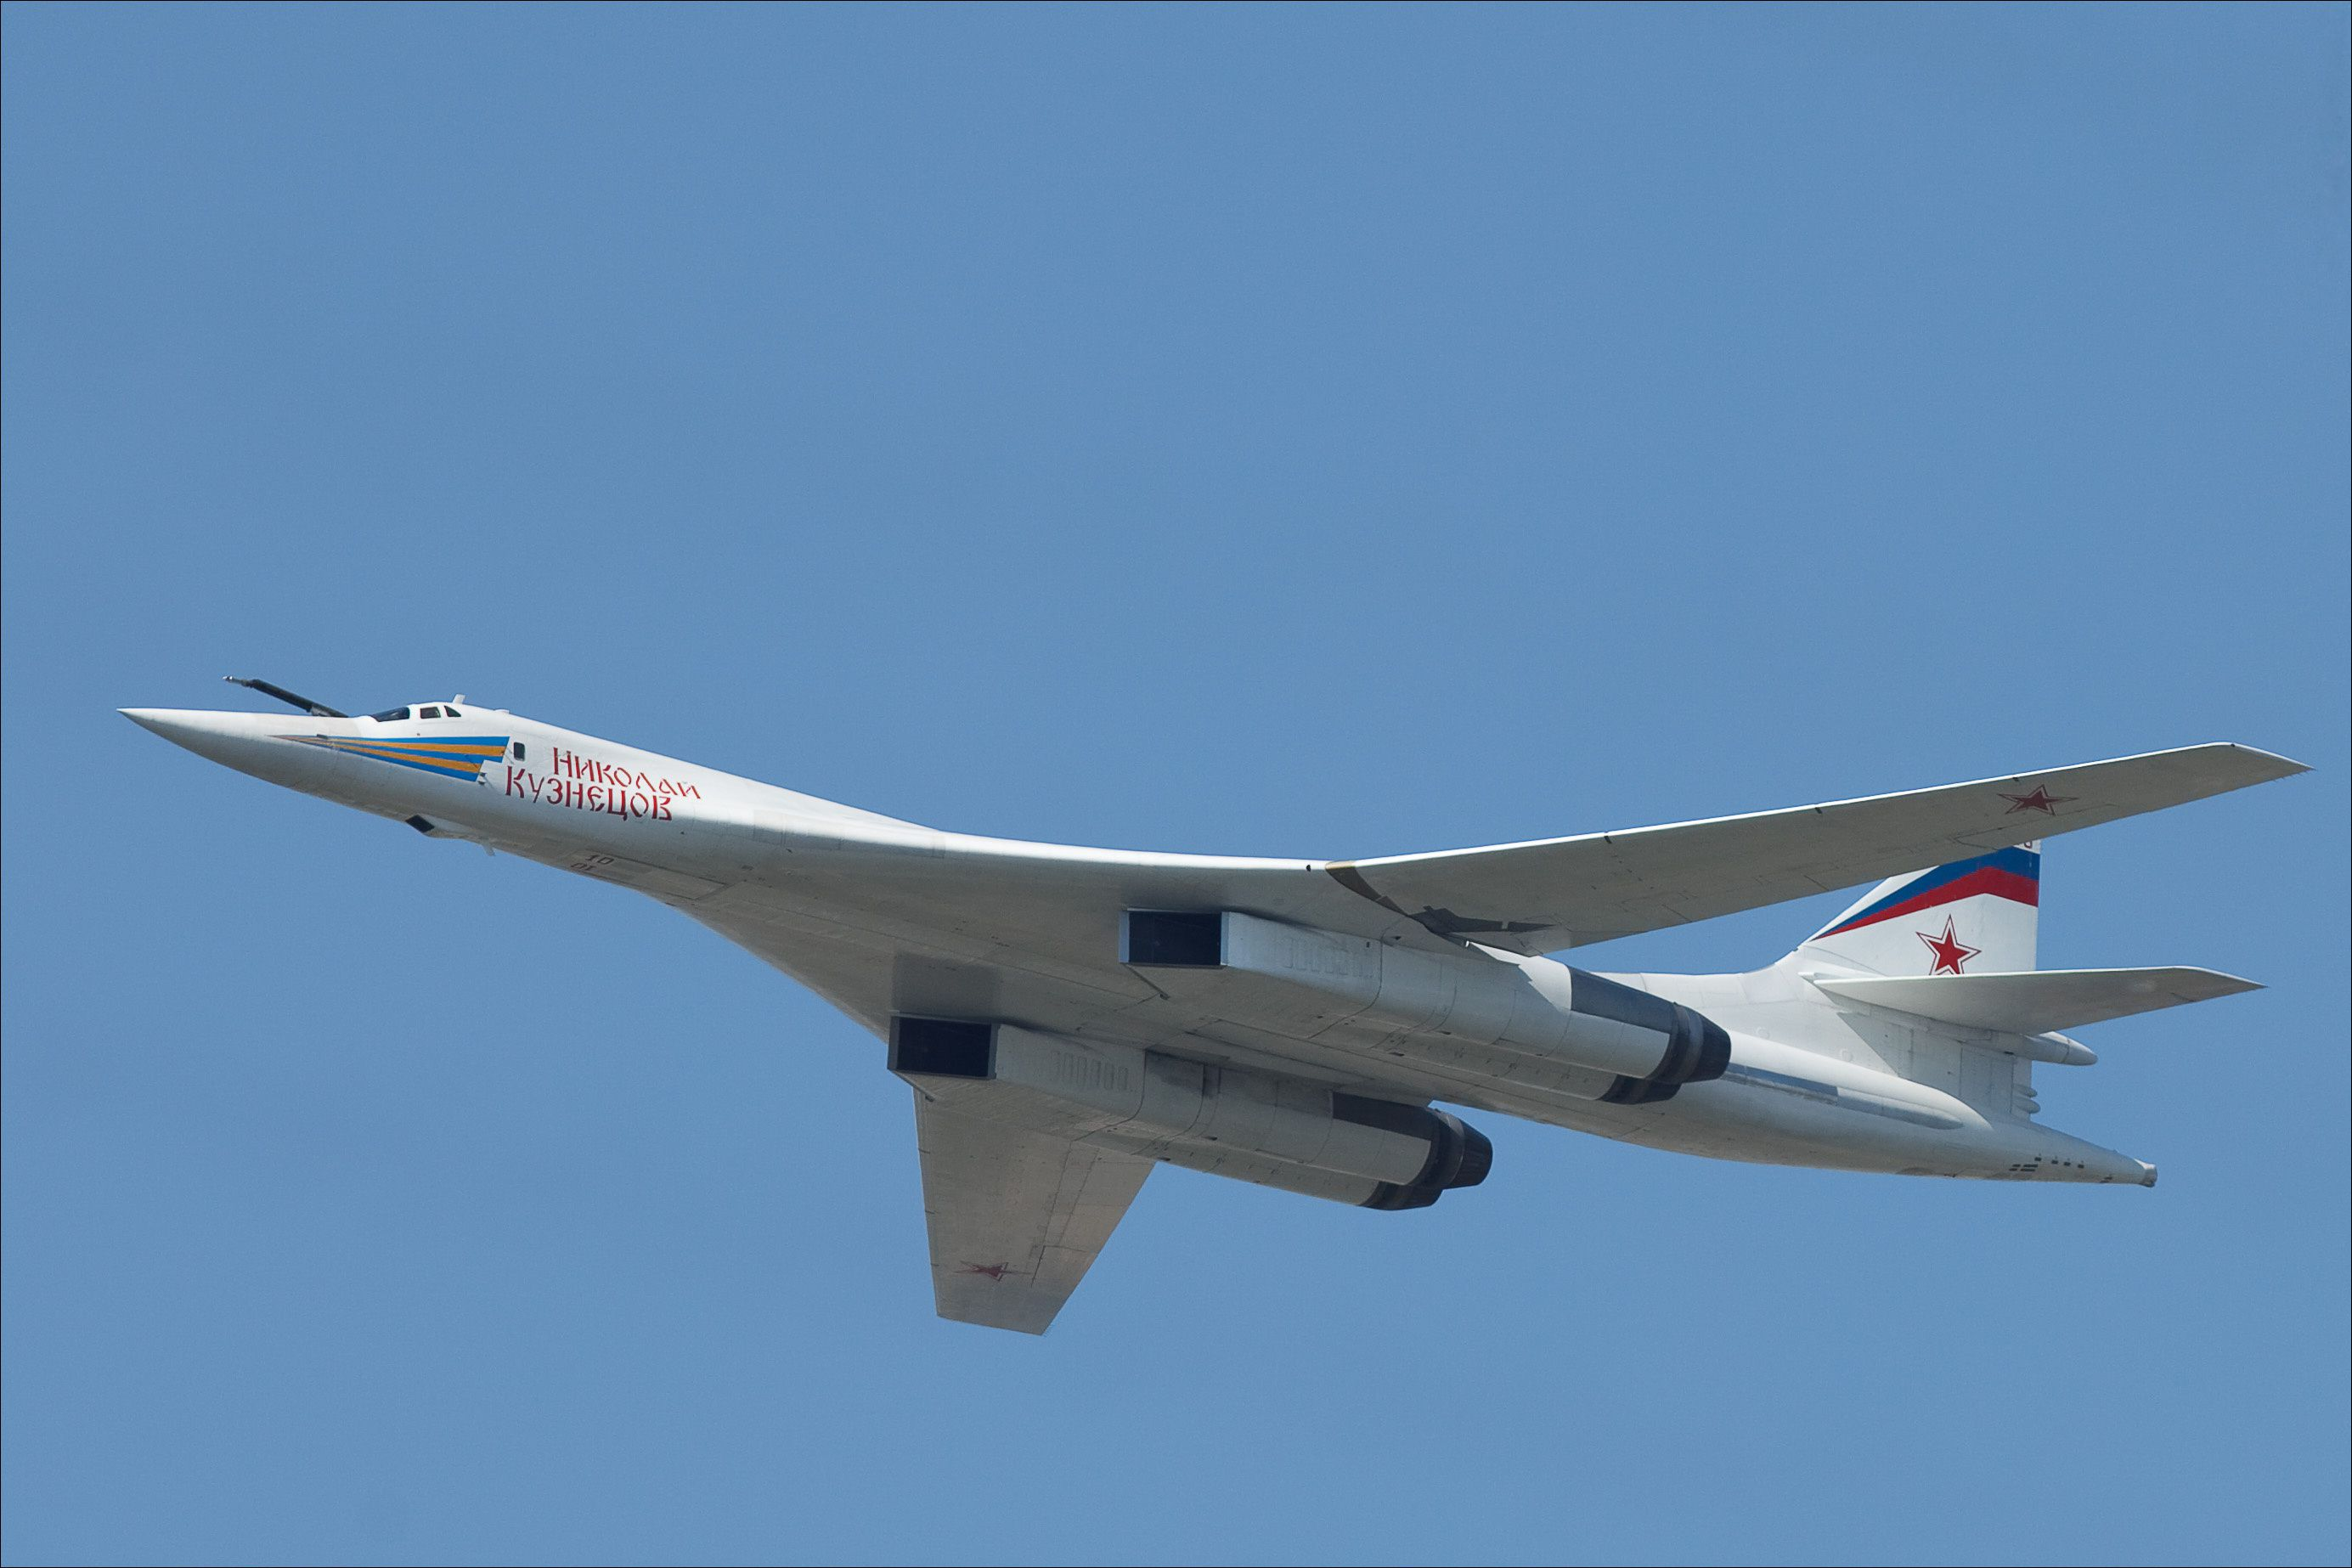 The Tu-160 (NATO designation Blackjack)